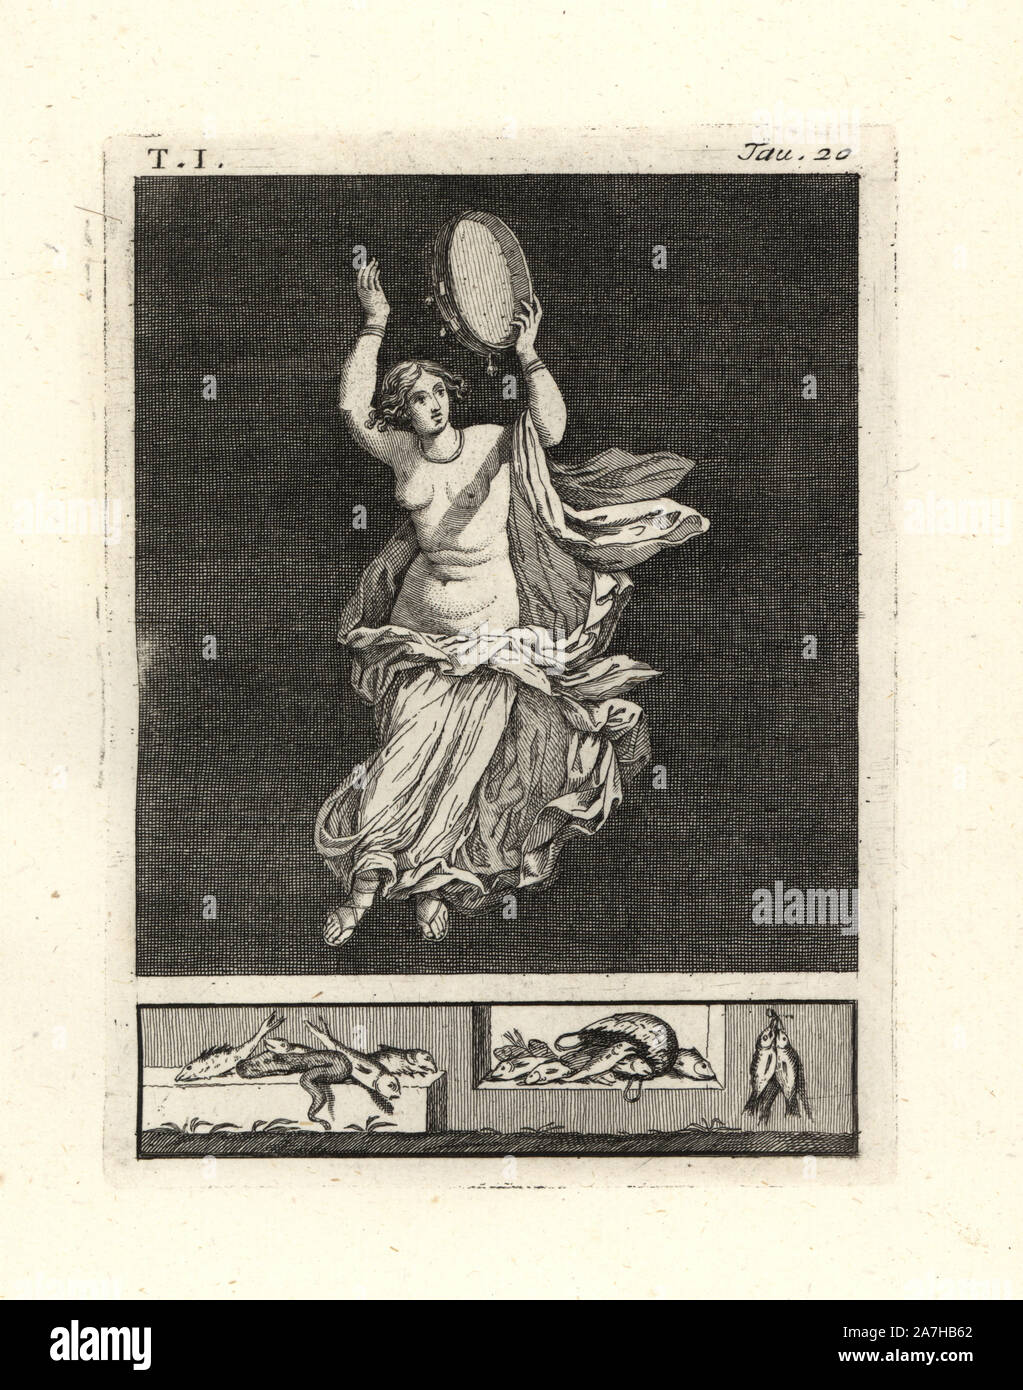 """Painting removed from a wall of a room, possibly a triclinium or dining room, in a house in Pompeii in 1749. It shows a bacchant dancer striking a tympanum or tambourine with her hand. She wears a necklace and bracelets, and a fine robe in white lined with red, the colour of Bacchus. Copperplate engraved by Tommaso Piroli from his own """"Antichita di Ercolano"""" (Antiquities of Herculaneum), Rome, 1789.  Italian artist and engraver Piroli (1752-1824) published six volumes between 1789 and 1807 documenting the murals and bronzes found in Heraculaneum and Pompeii. Stock Photo"""